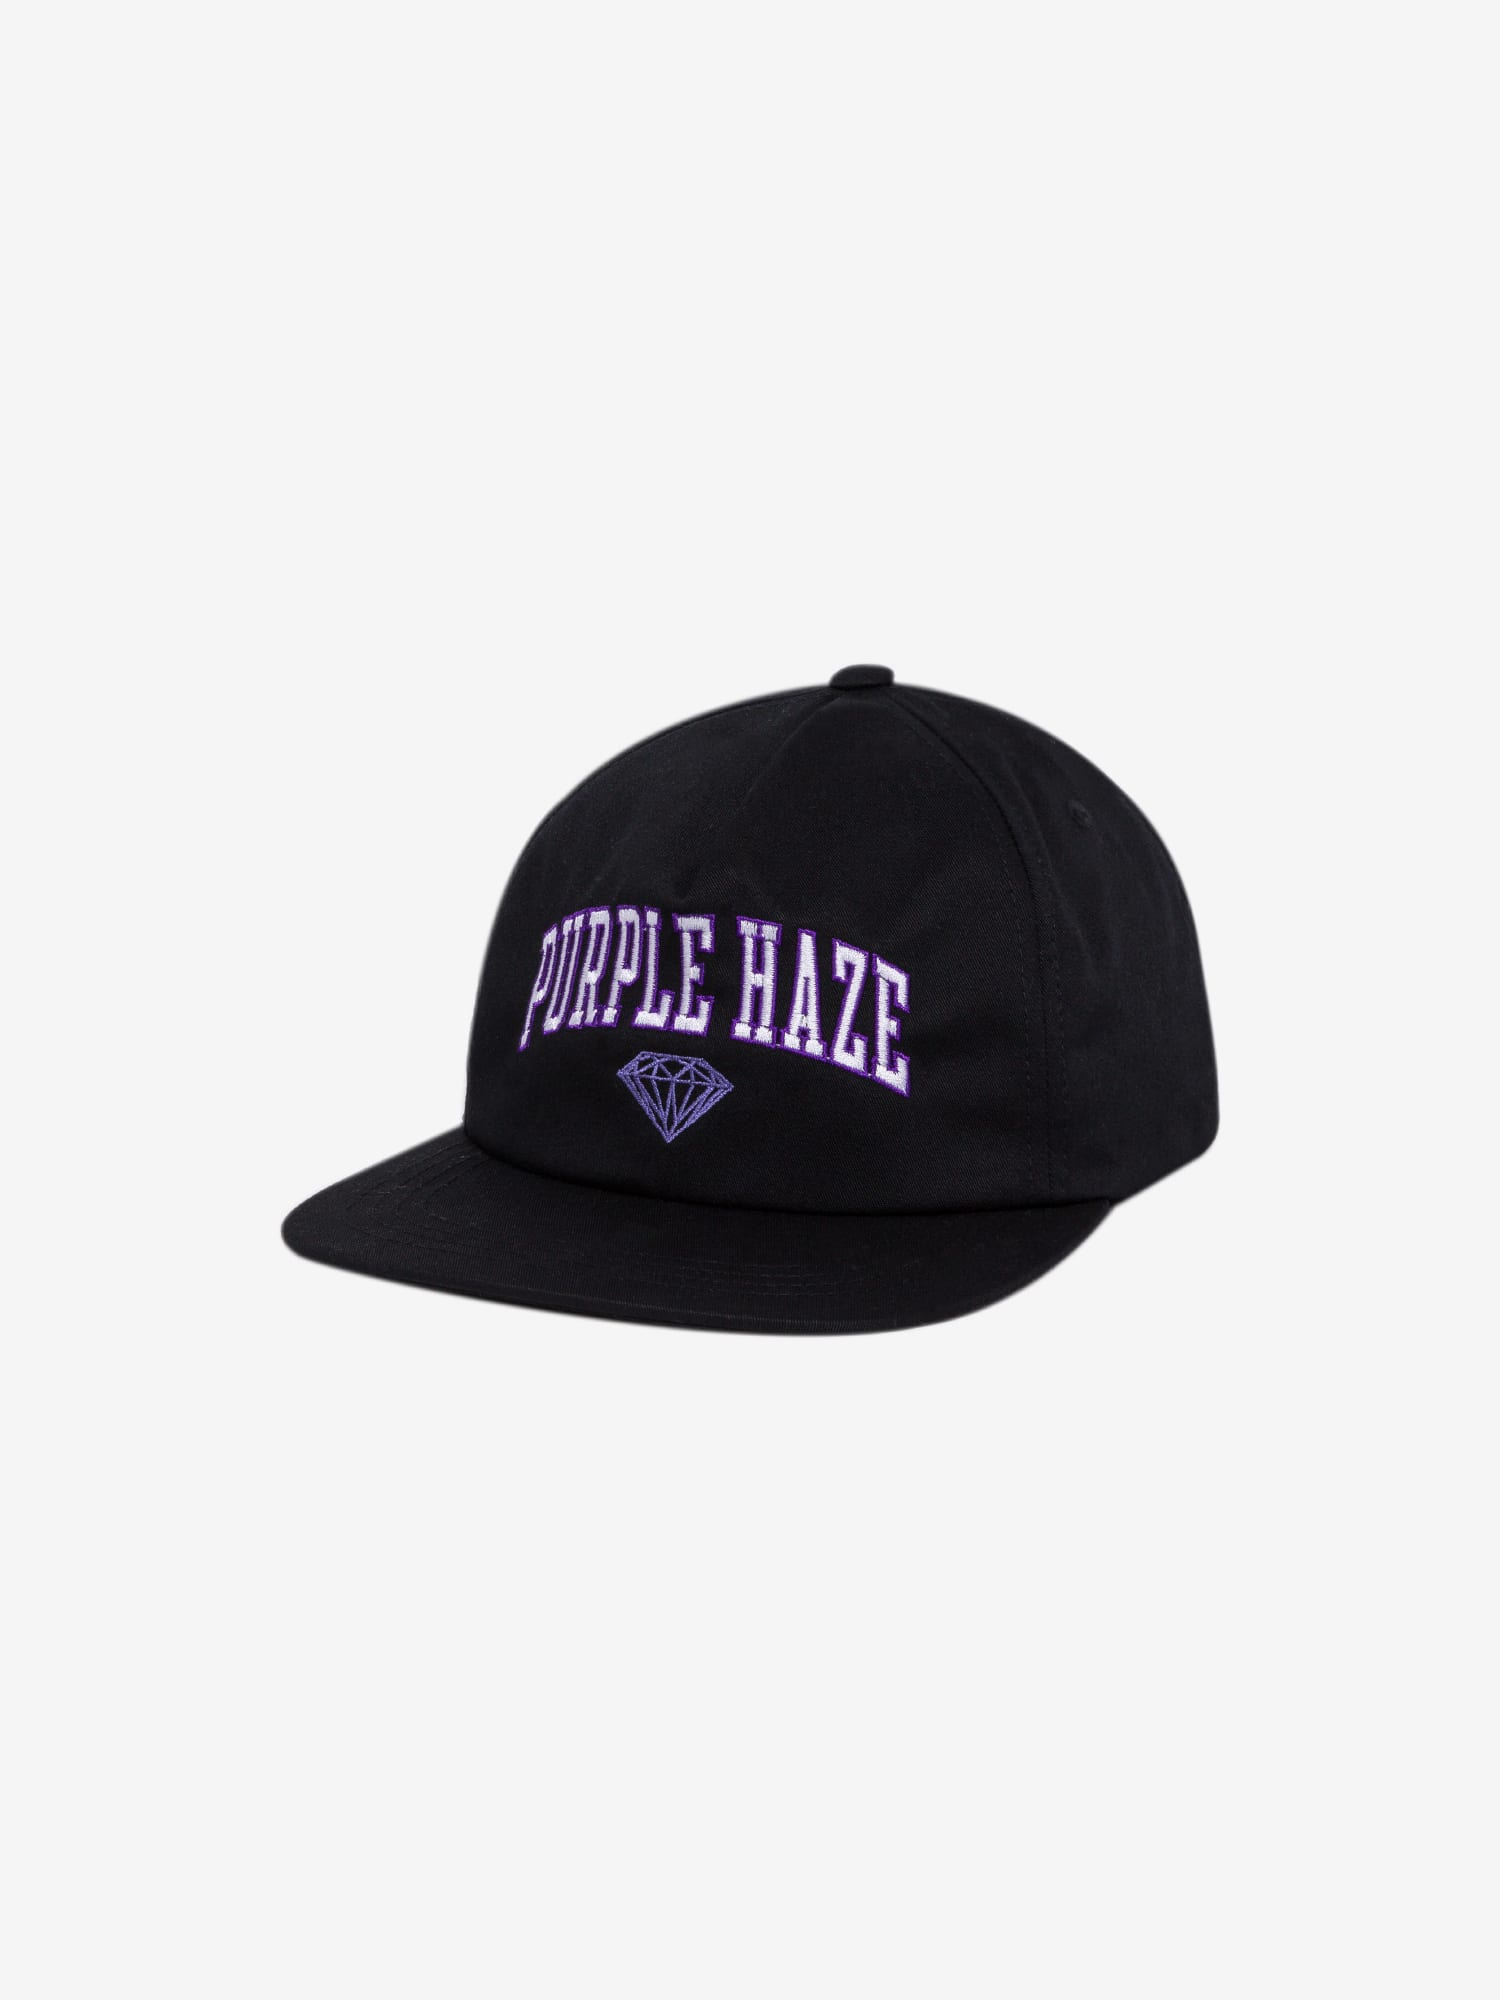 Purple Haze merch